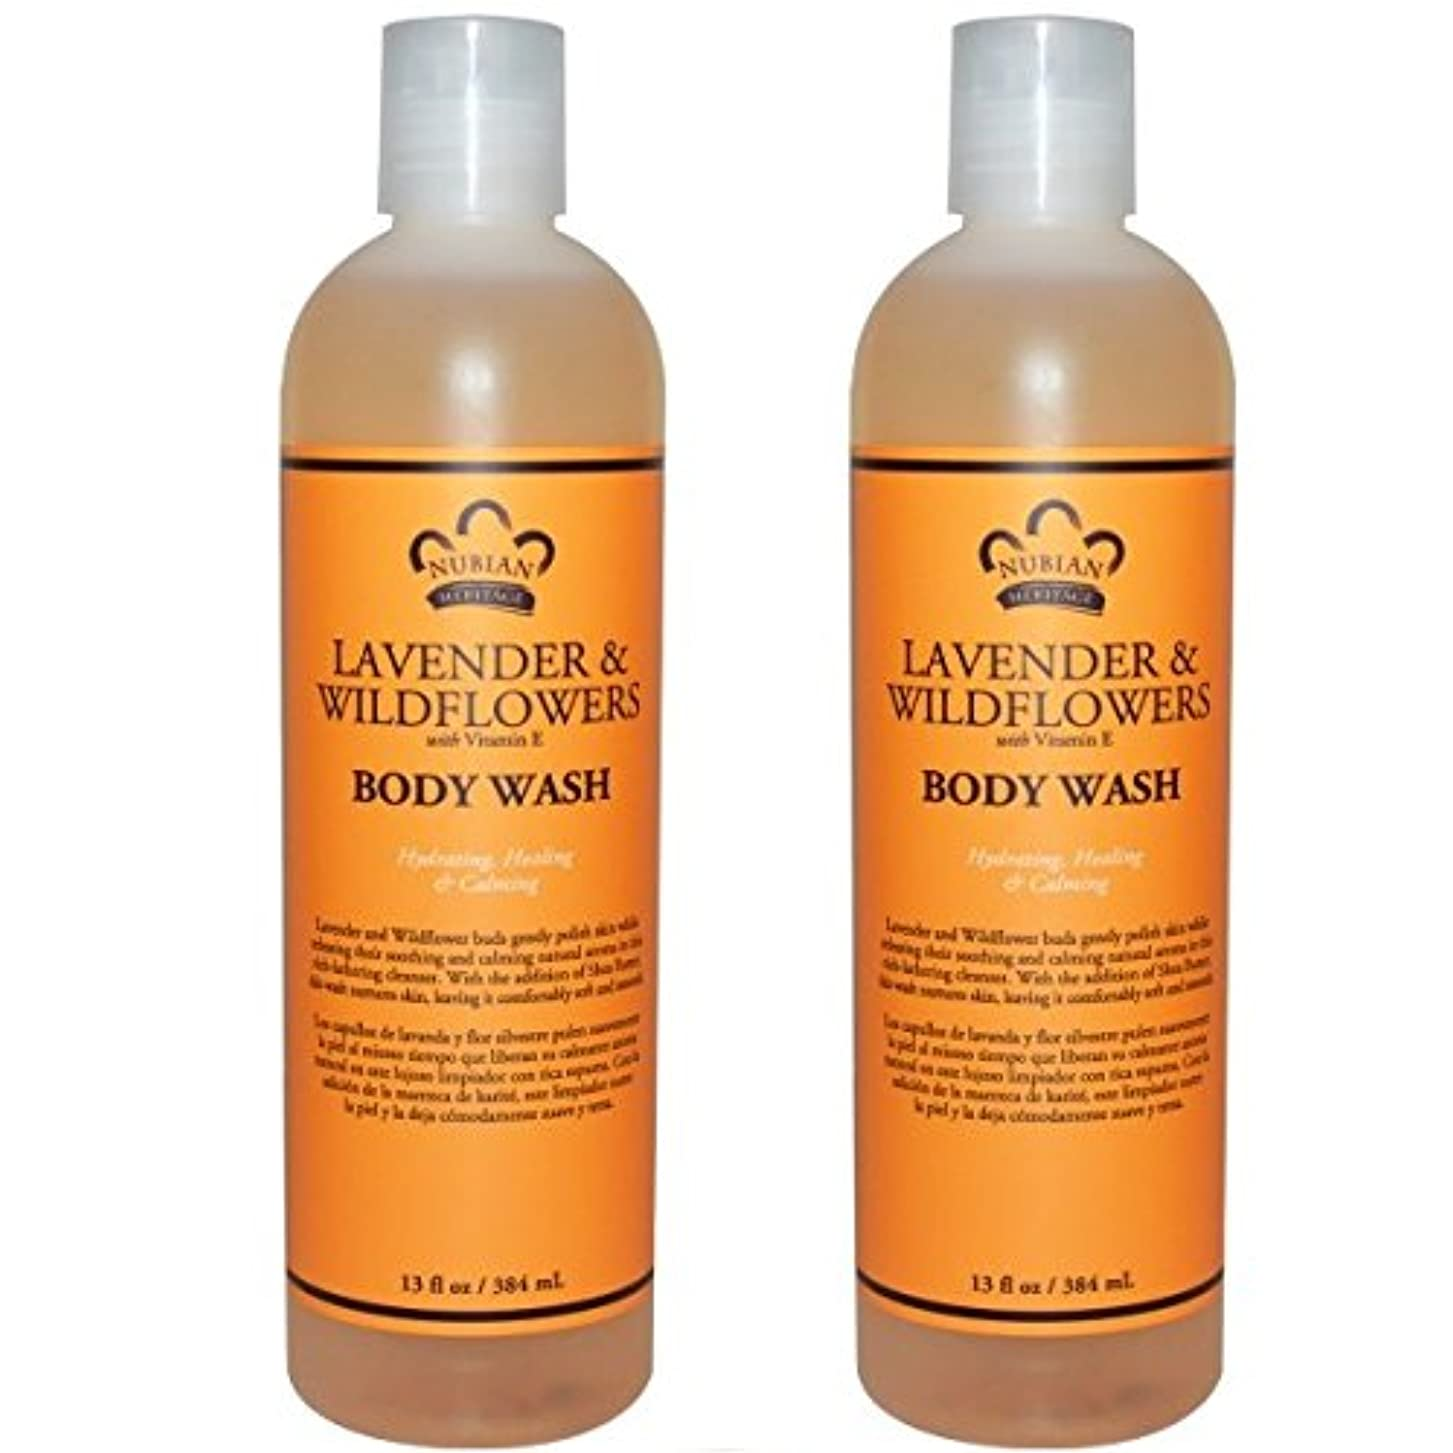 レンジかすかなチャレンジ【海外直送品】【2本】Nubian Heritage Body Wash Relaxing & Nourishing, Lavender & Wildflowers - 13 fl oz (384 ml)